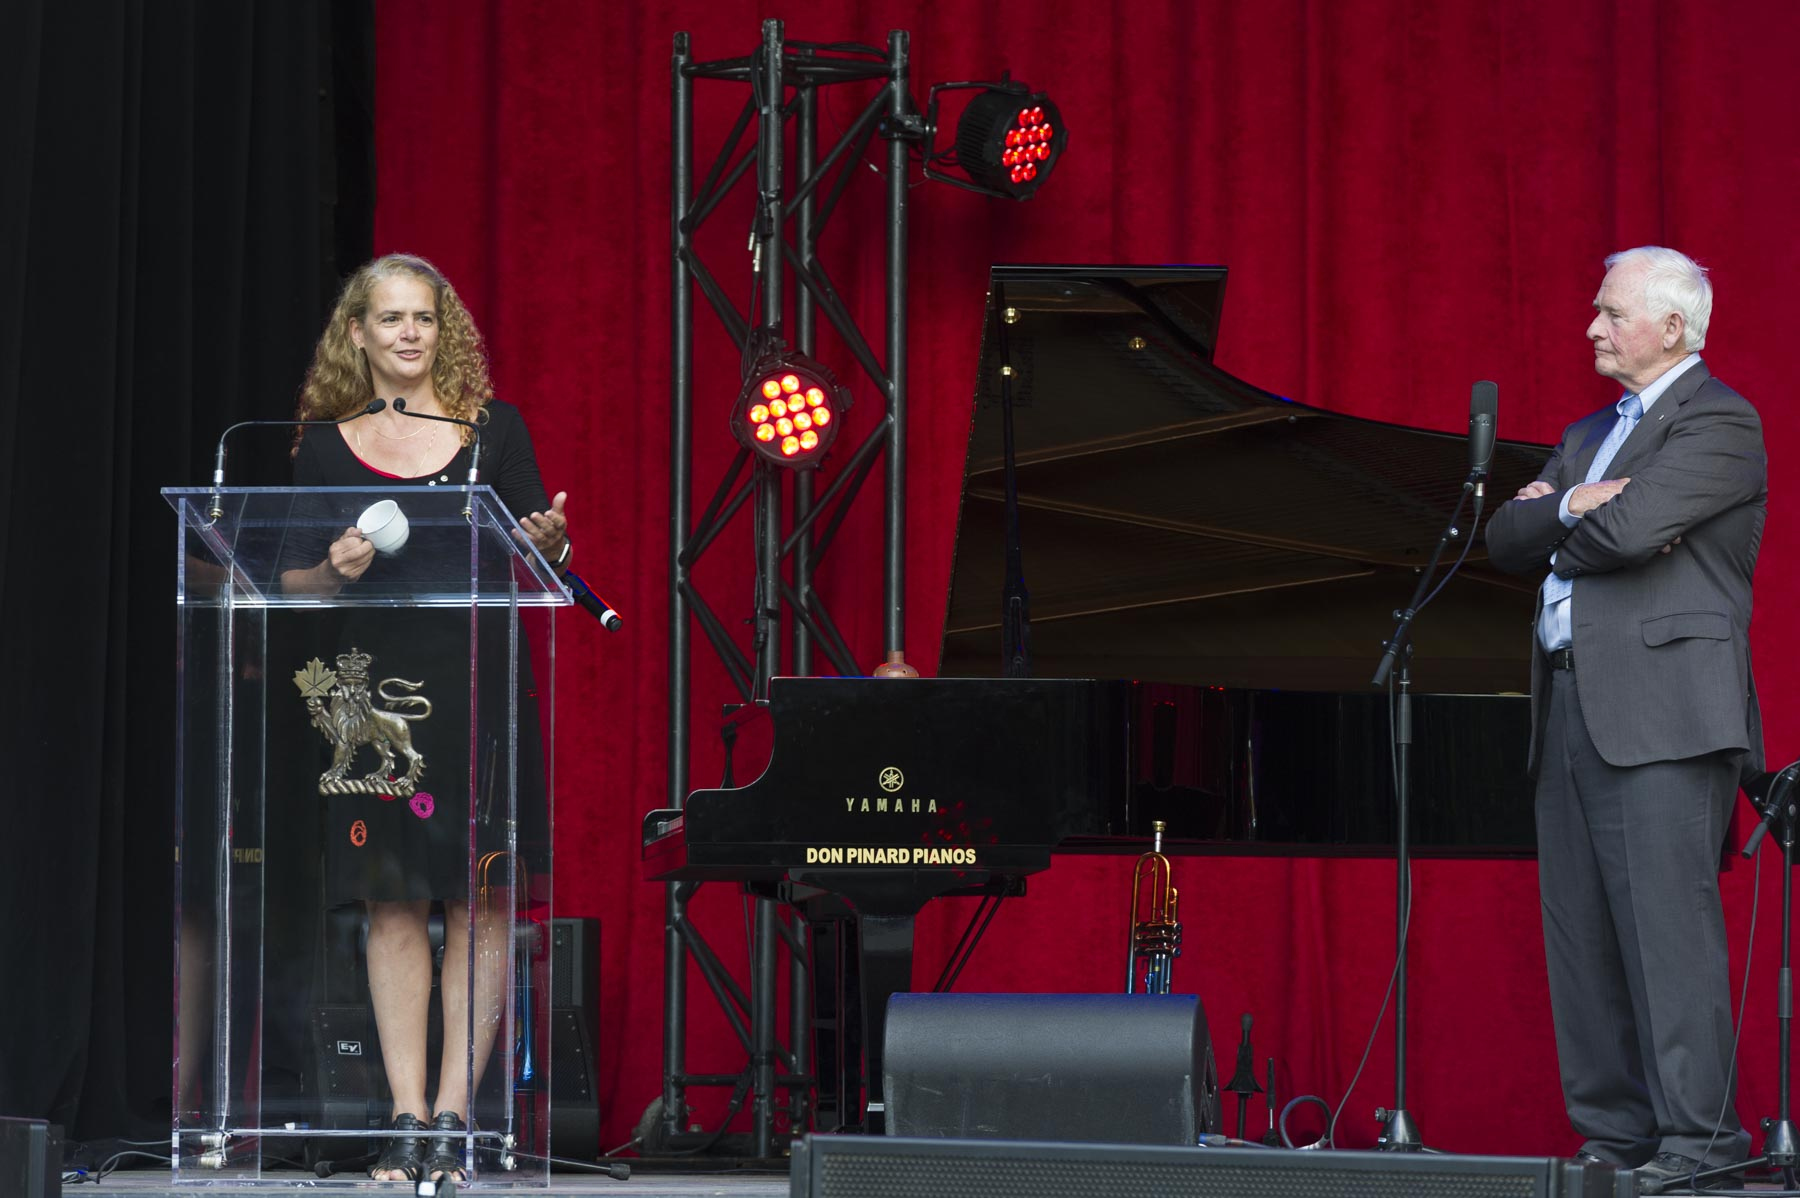 With an eye to the future, Ms. Julie Payette, Governor General Designate, said a few words to Order of Canada members during this historical gathering.